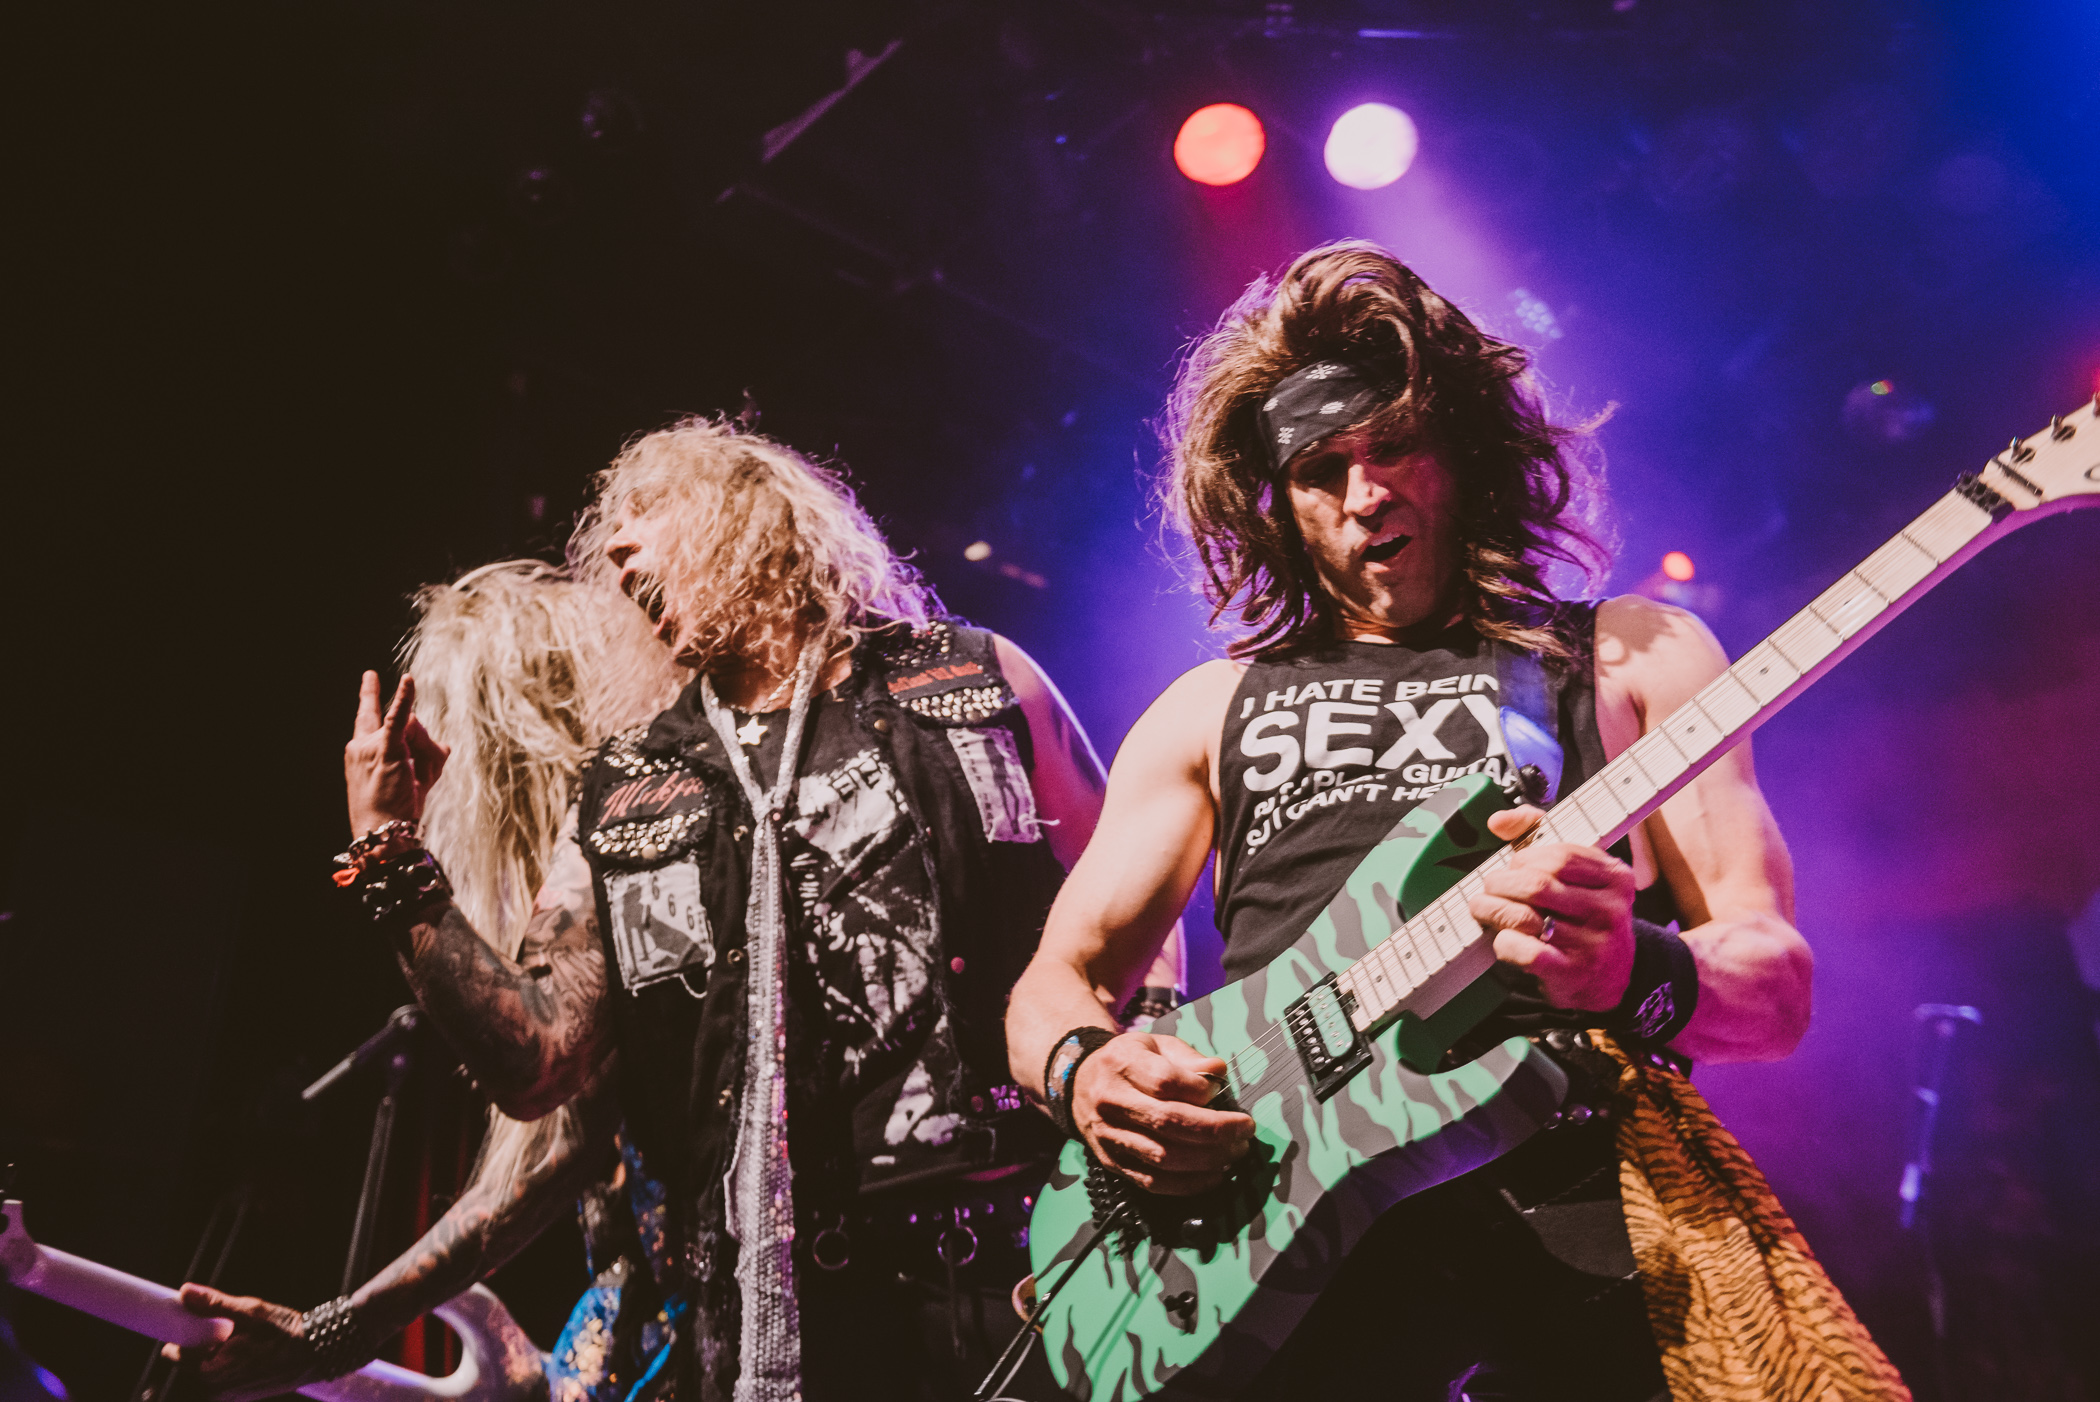 1_Steel_Panther-Commodore-Ballroom-Timothy_Nguyen-20190411 (8 of 21).JPG